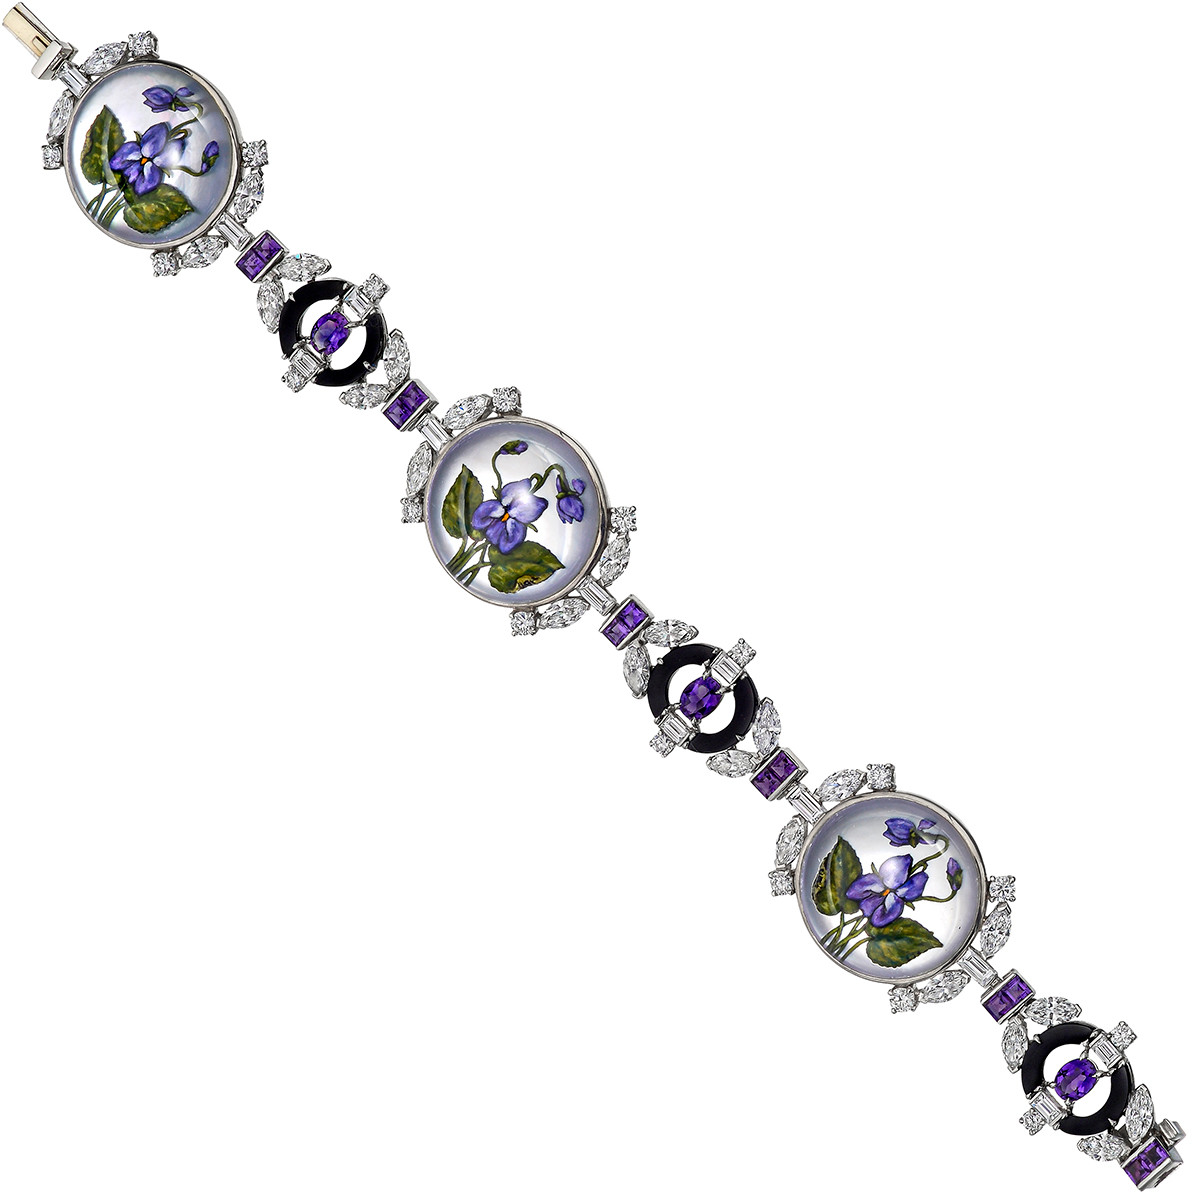 Rock Crystal Flower, Diamond & Amethyst Bracelet